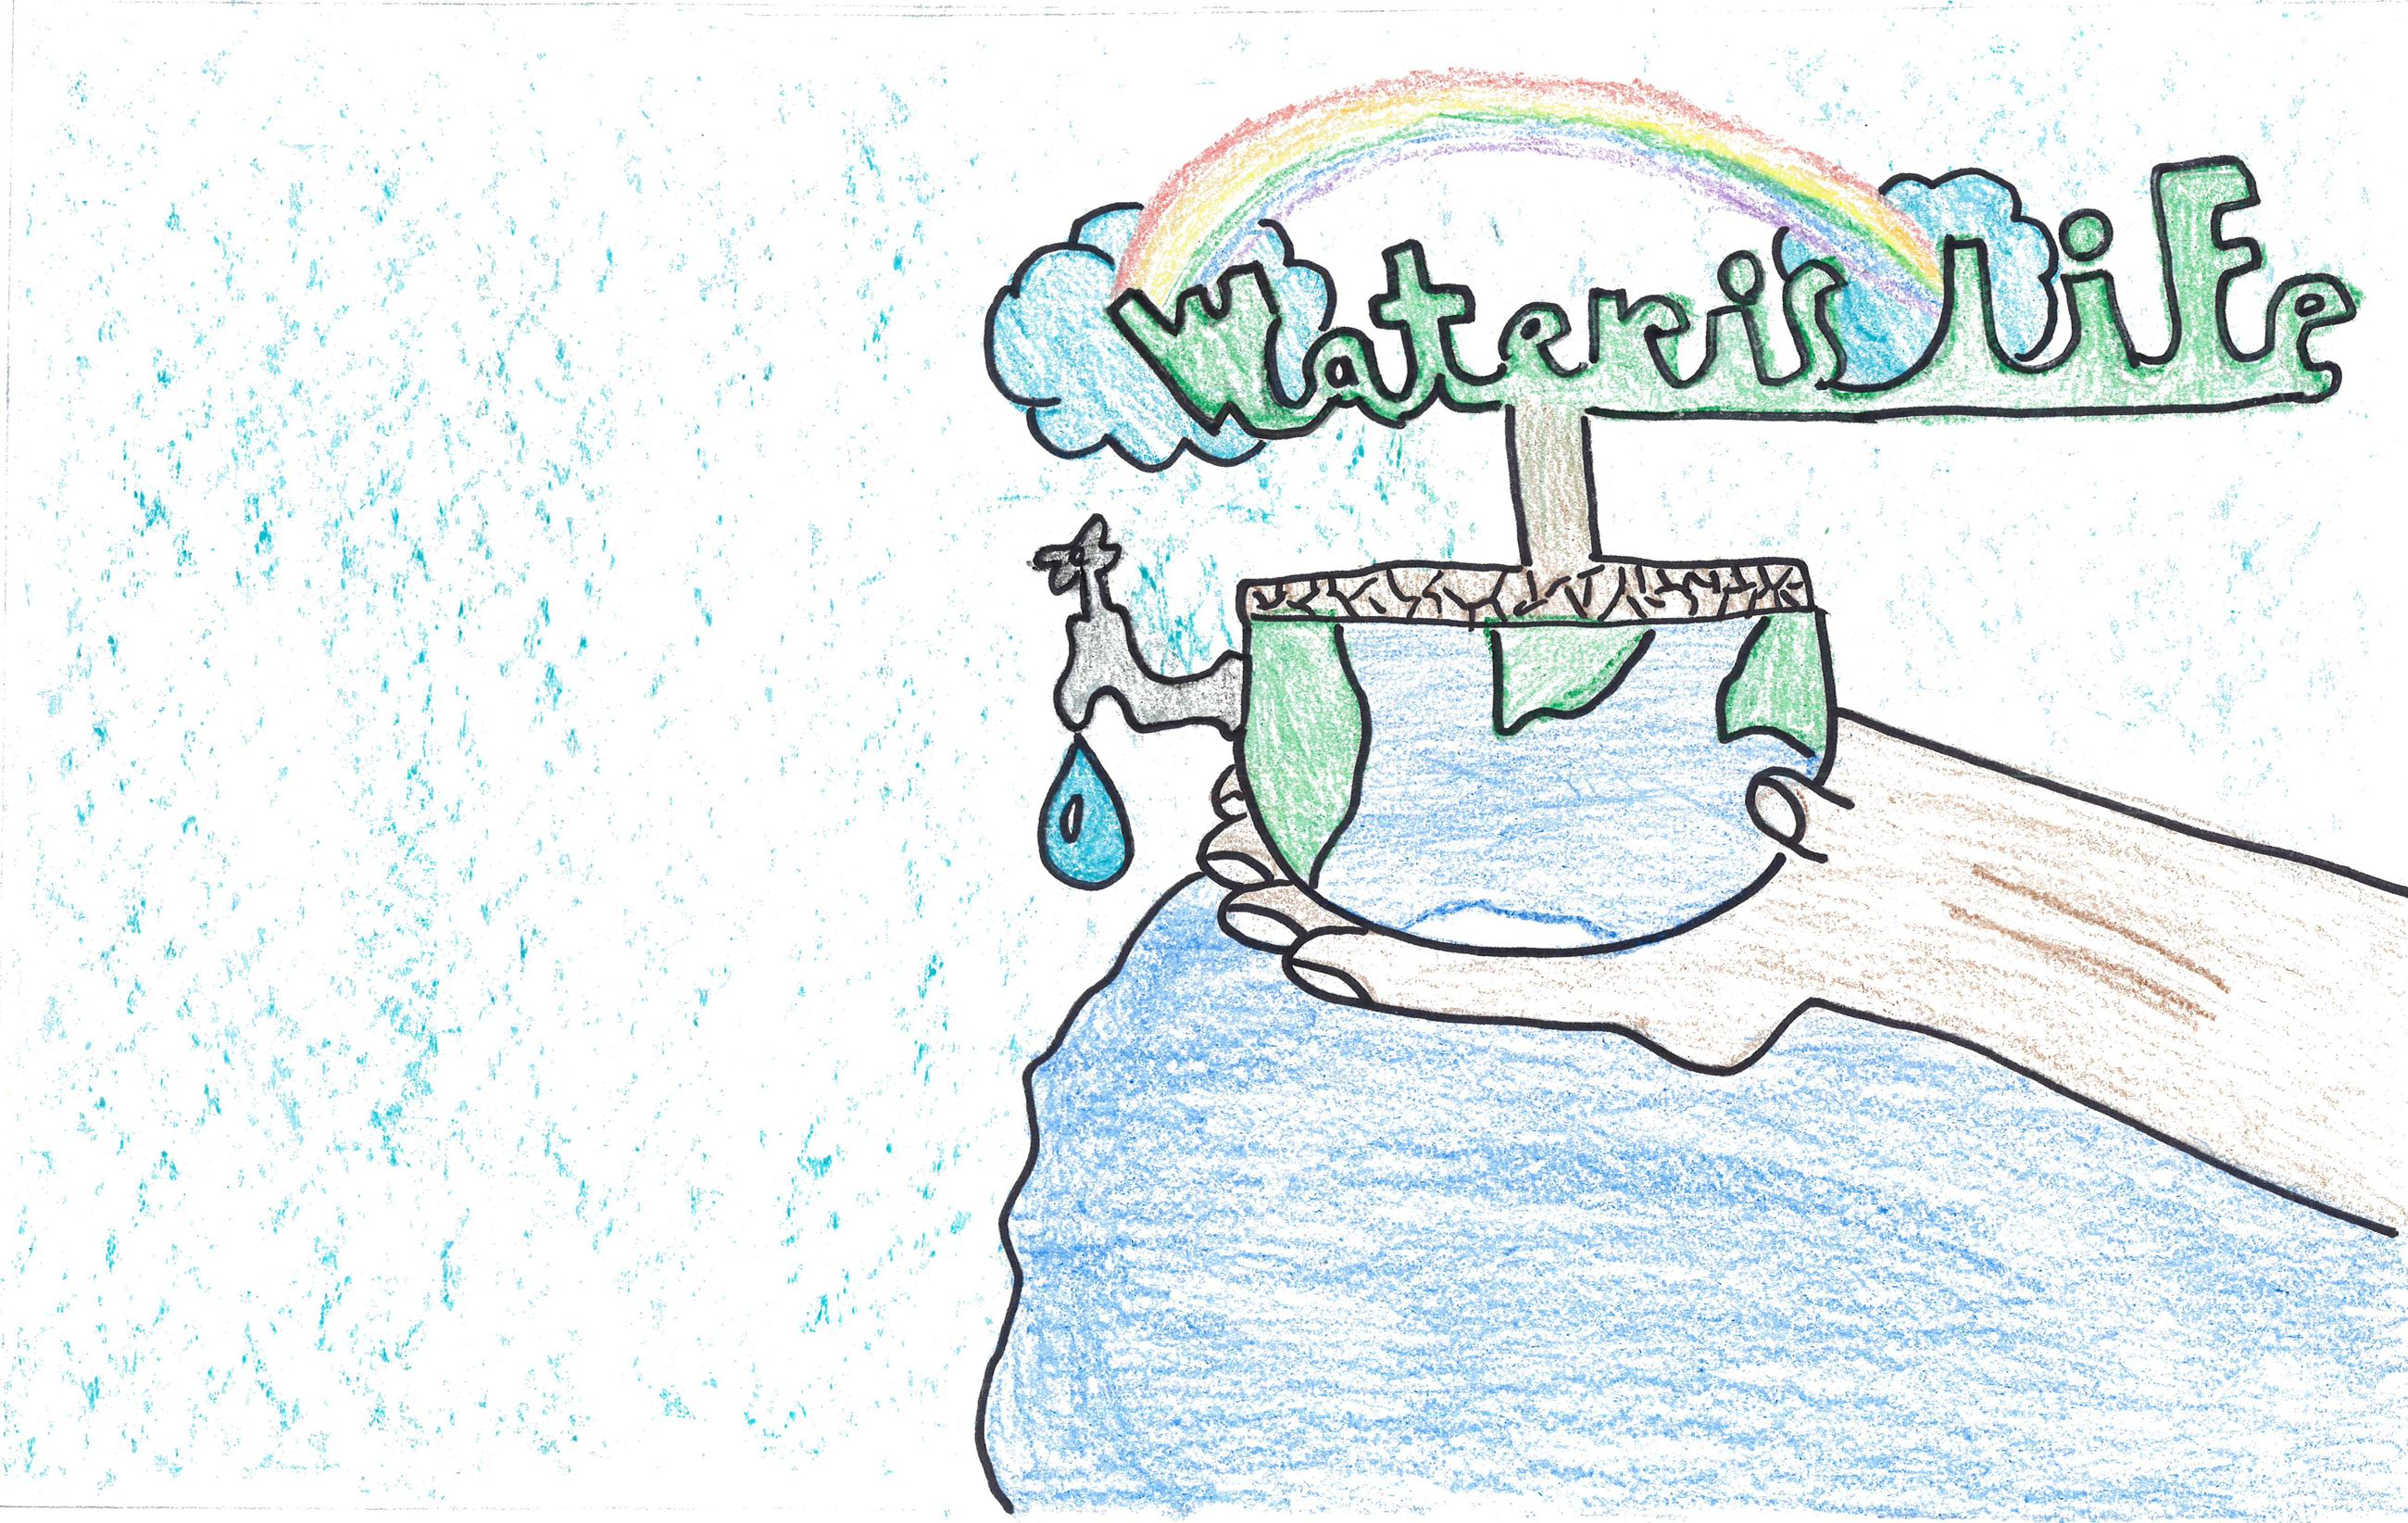 Adrian Haro&#39s poster with illustrations of water use and conservation